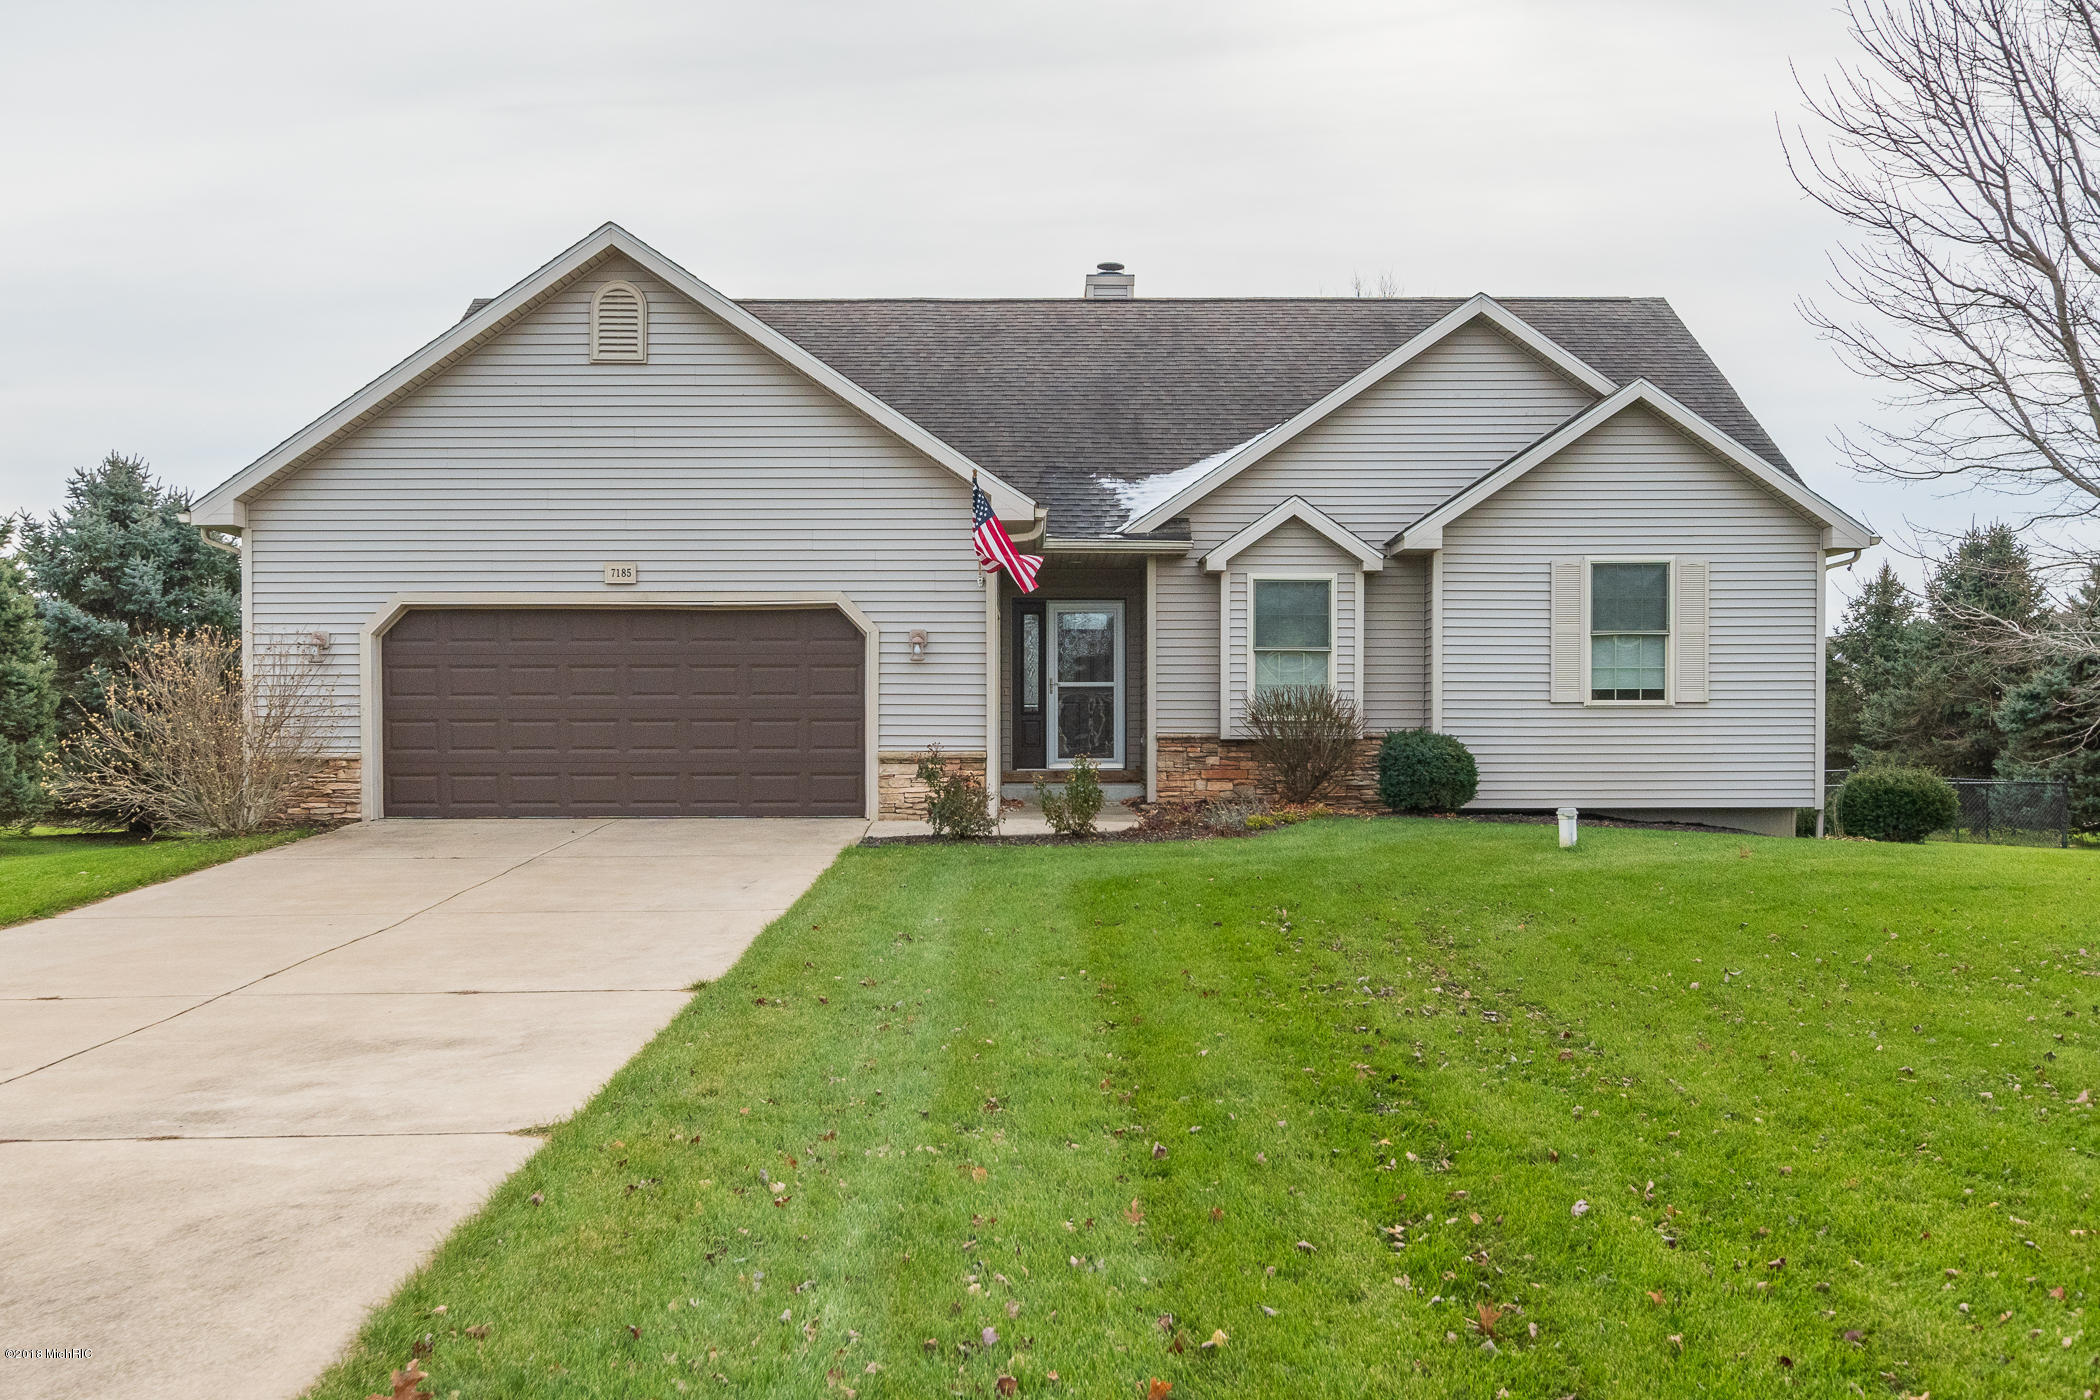 Photo for 7185 Riesling Street, Mattawan, MI 49071 (MLS # 18055952)